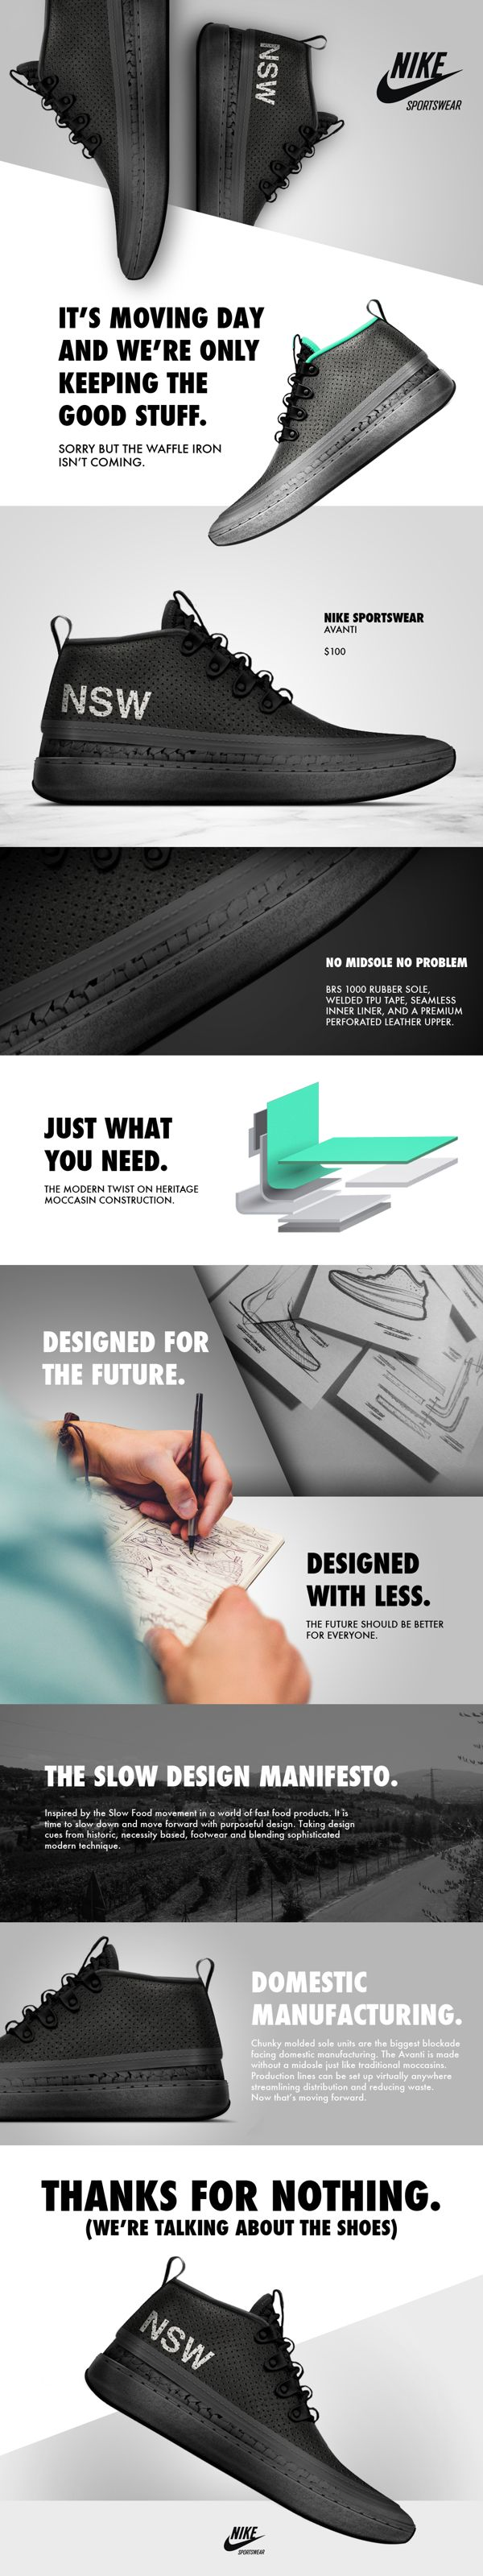 Cool Web Design on the Internet, NIKE. #webdesign #webdevelopment #website @ http://www.pinterest.com/alfredchong/web-design/